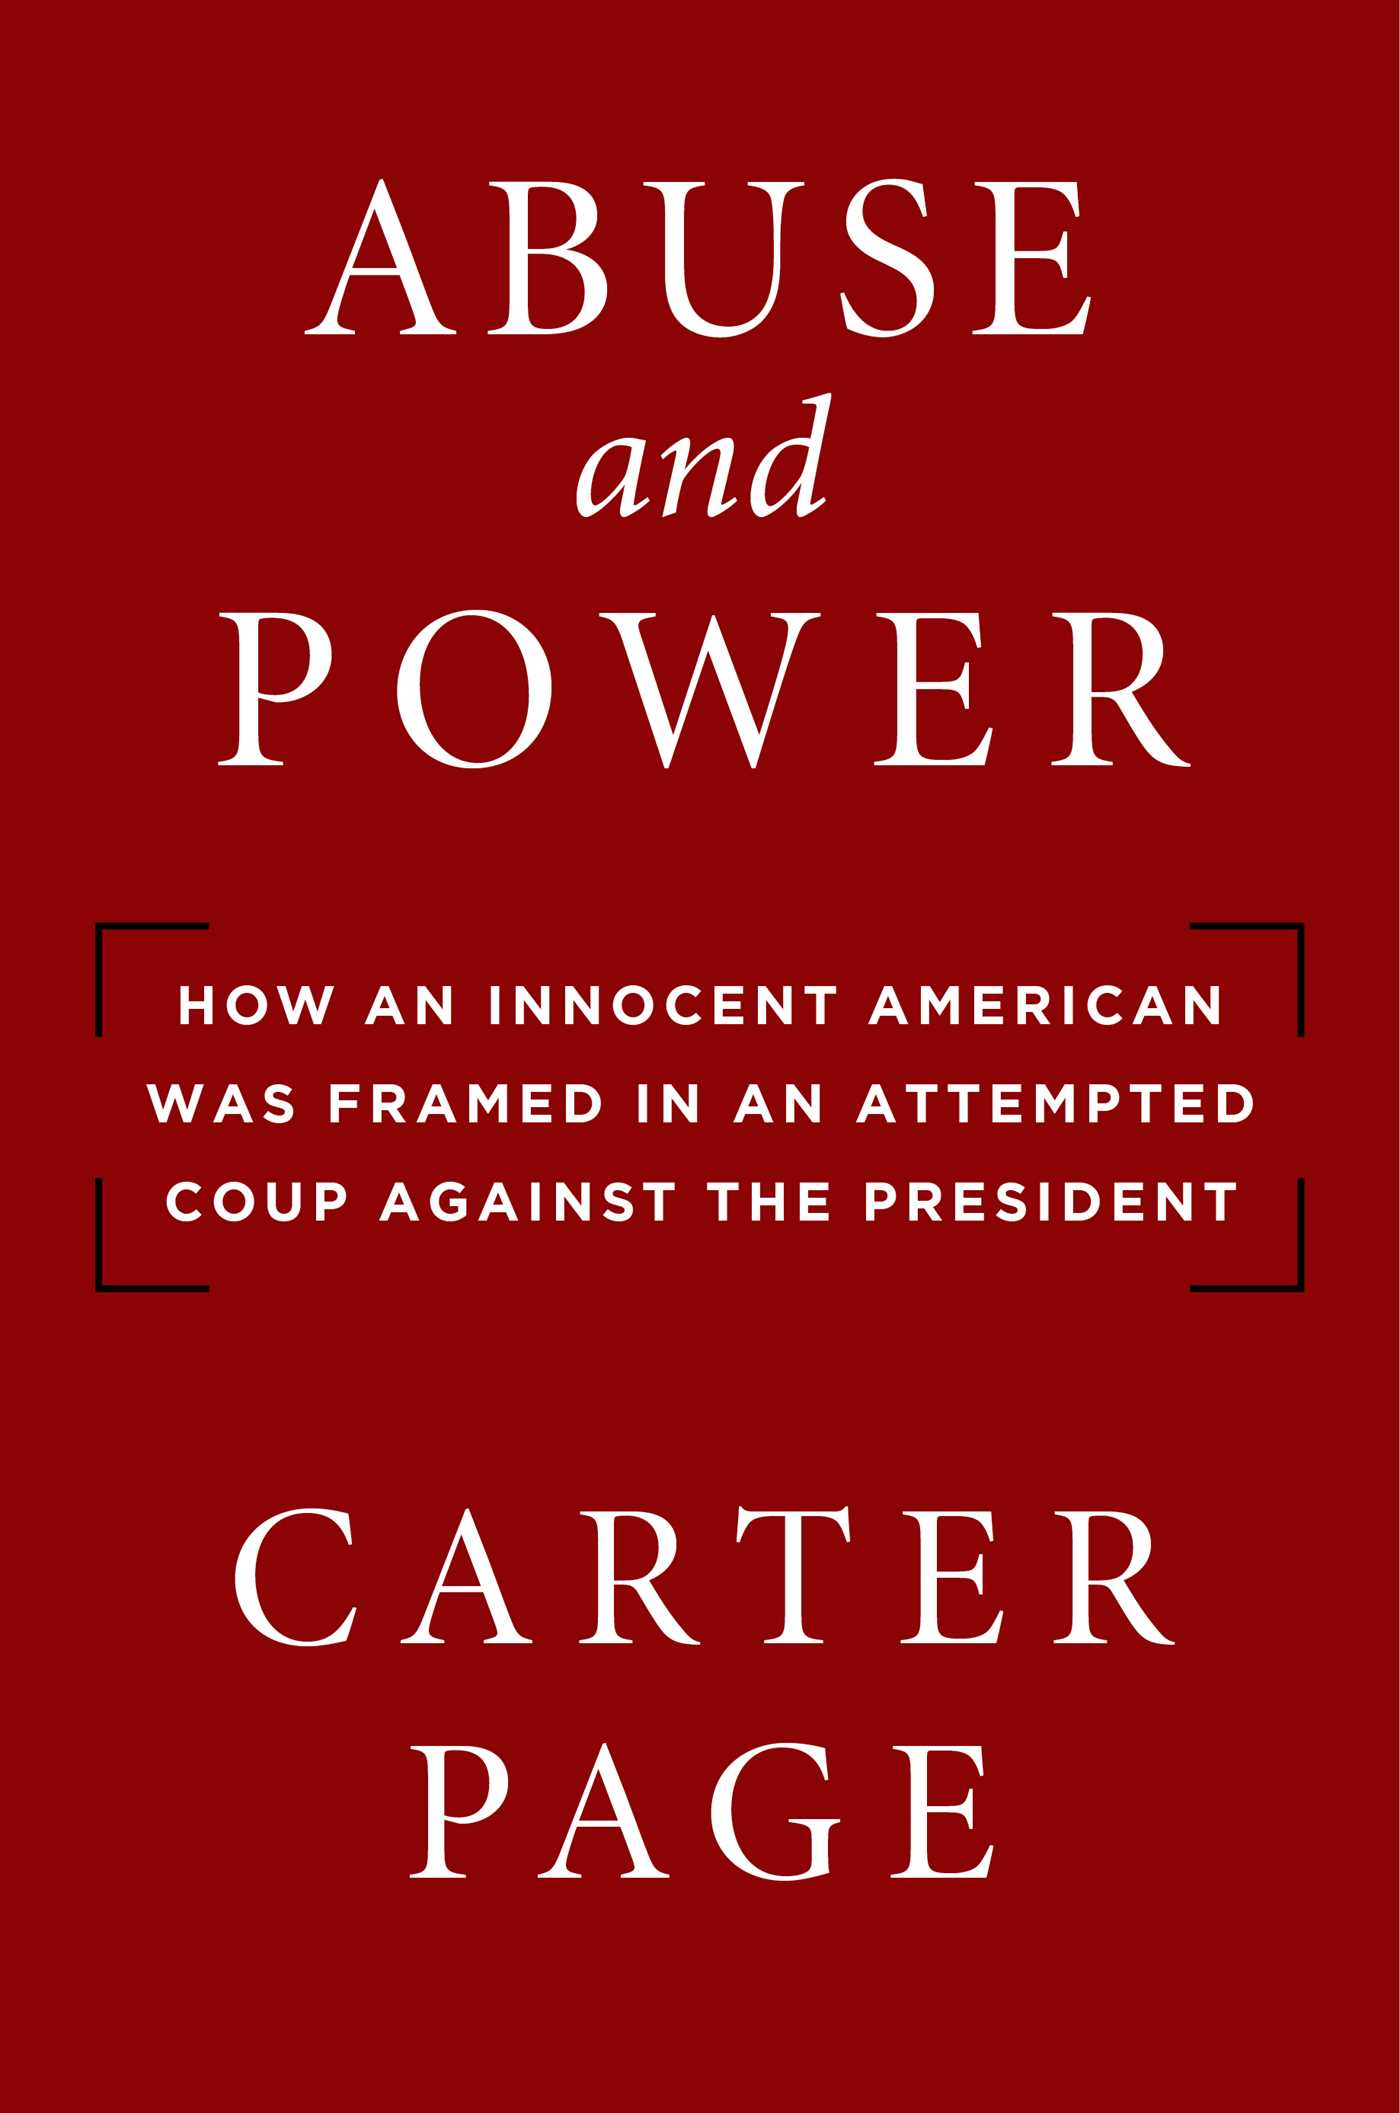 [PDF] [EPUB] Abuse and Power: How an Innocent American Was Framed in an Attempted Coup Against the President Download by Carter Page